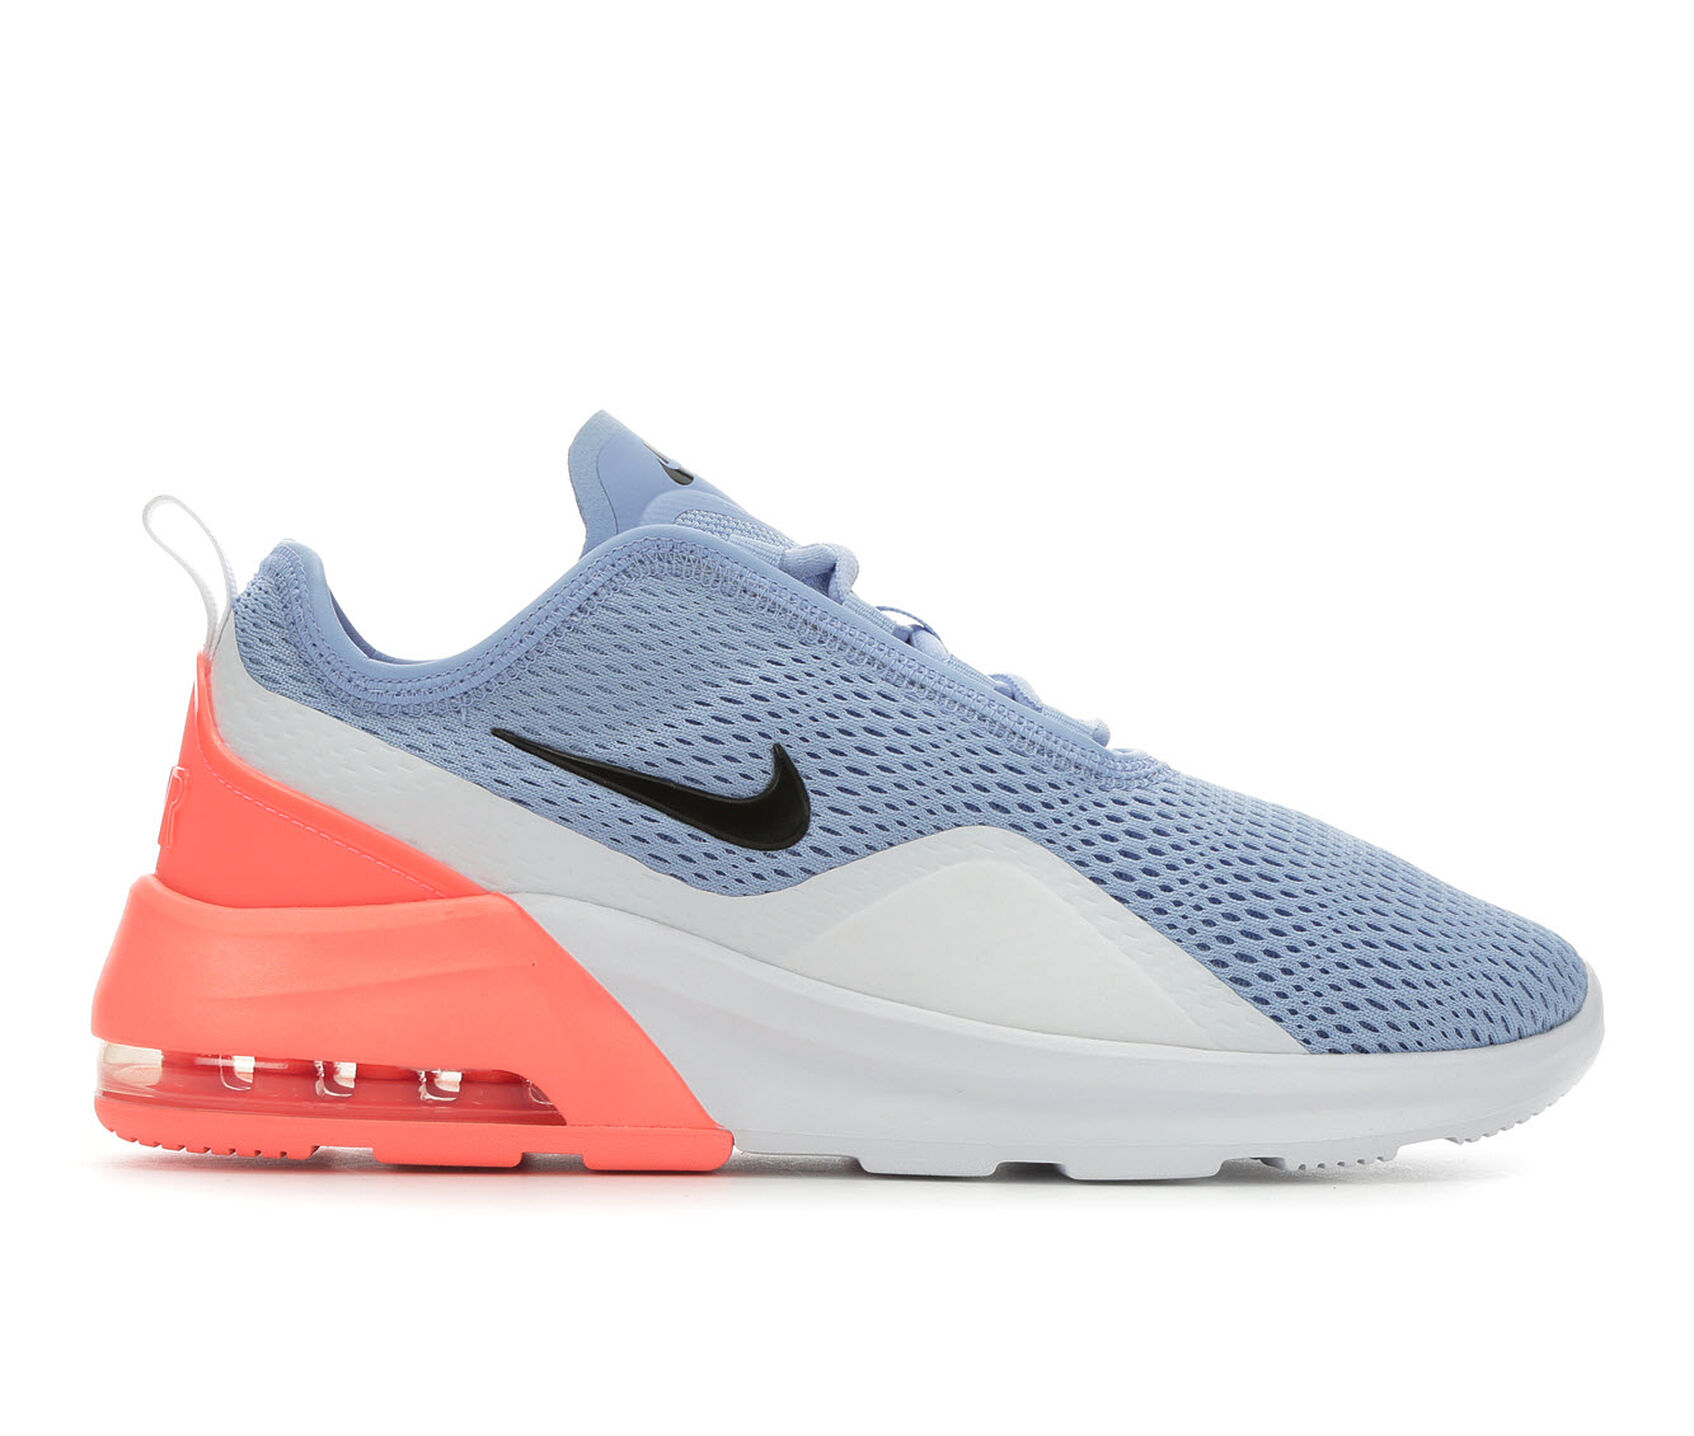 ... Nike Air Max Motion 2 Sneakers. Carousel Controls cf24139720